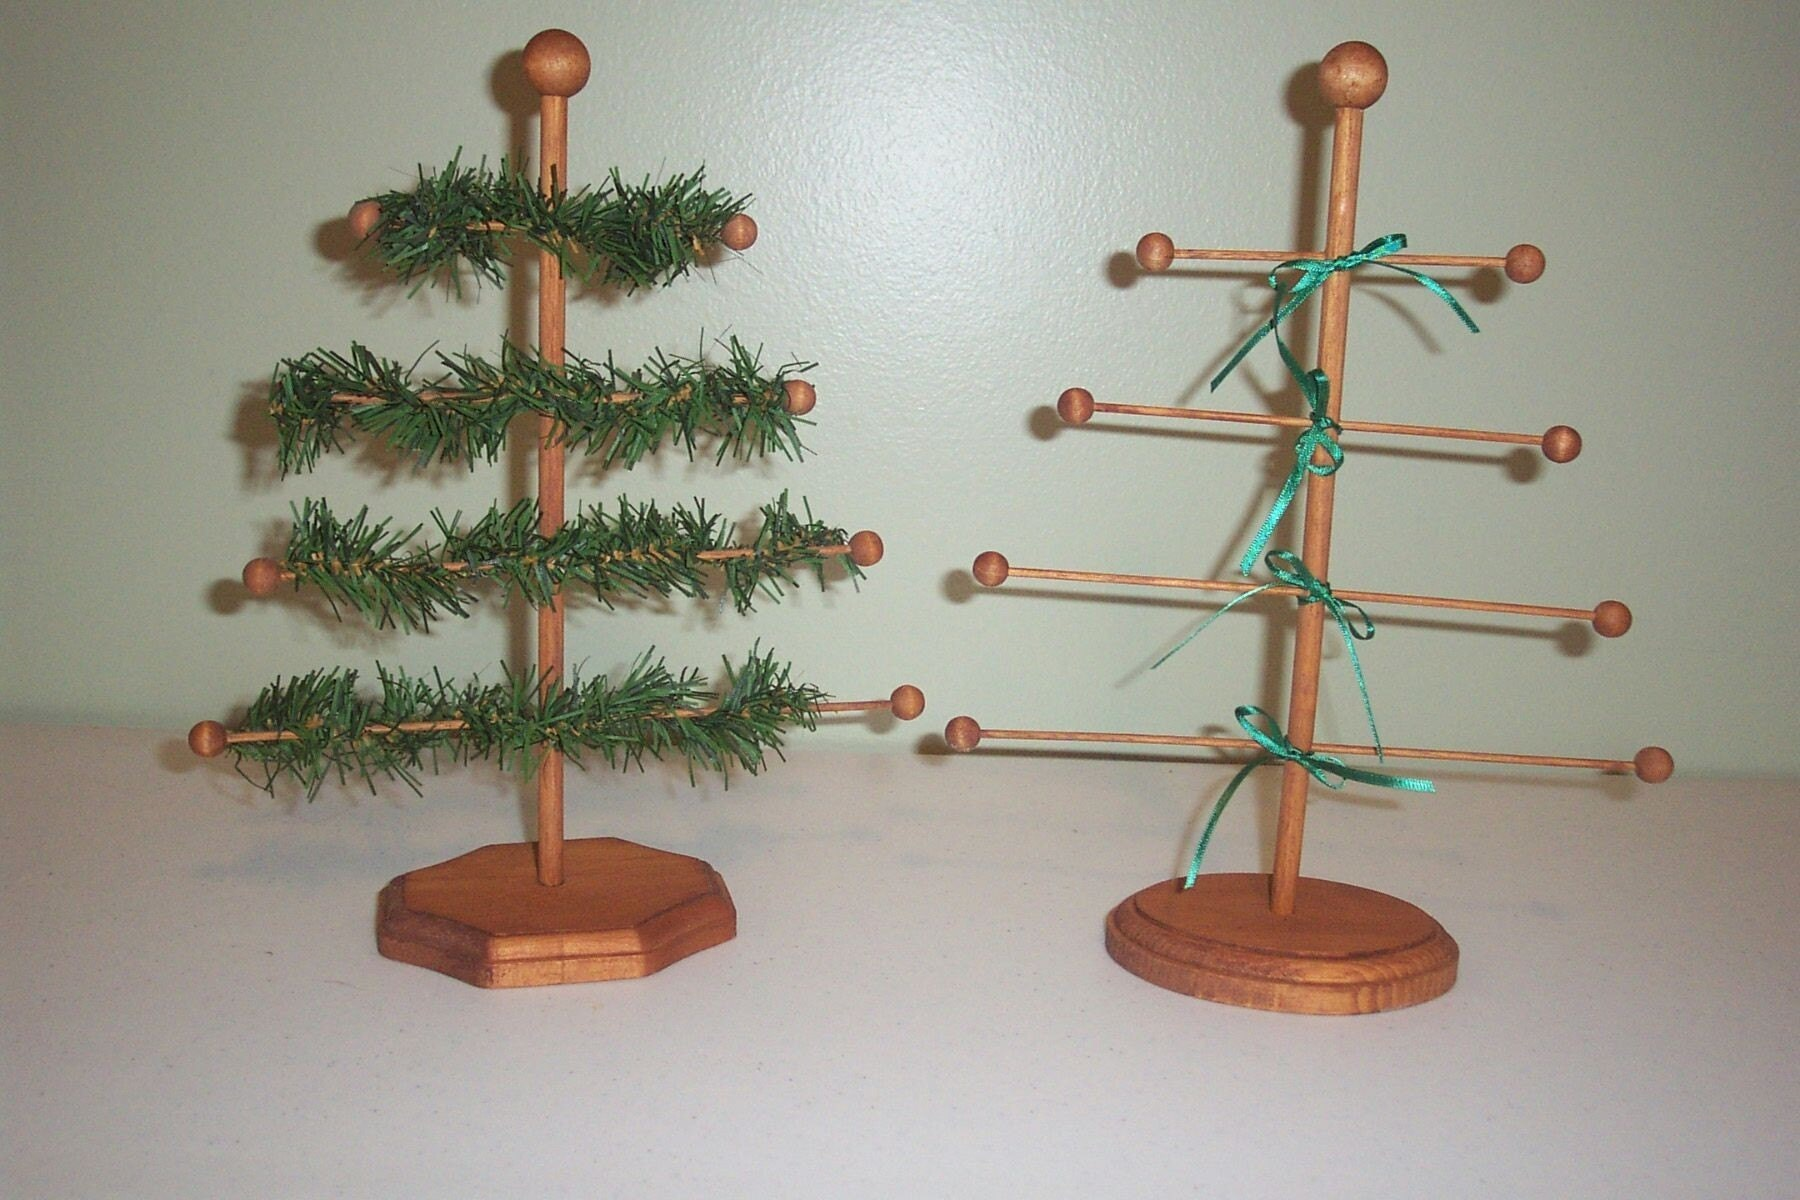 Fantastic Wooden Lighted Christmas Tree By Kevinscabins On Etsy